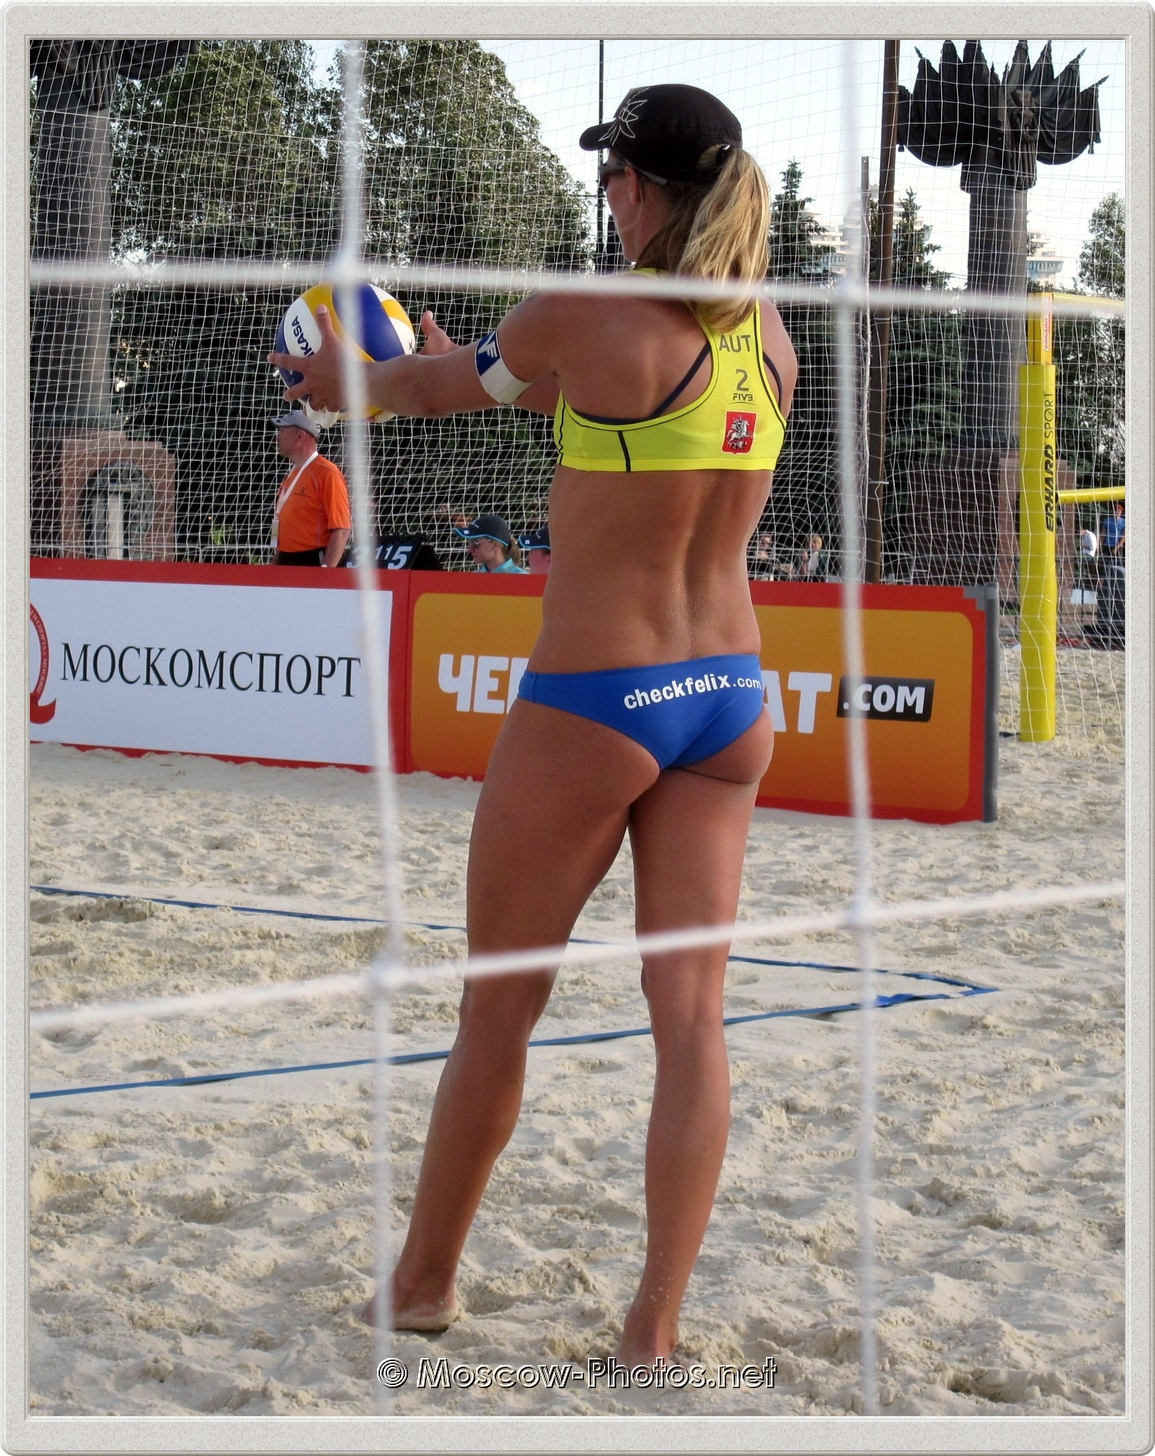 Austrian Beach Volleyball Player Barbara Babsi Hansel